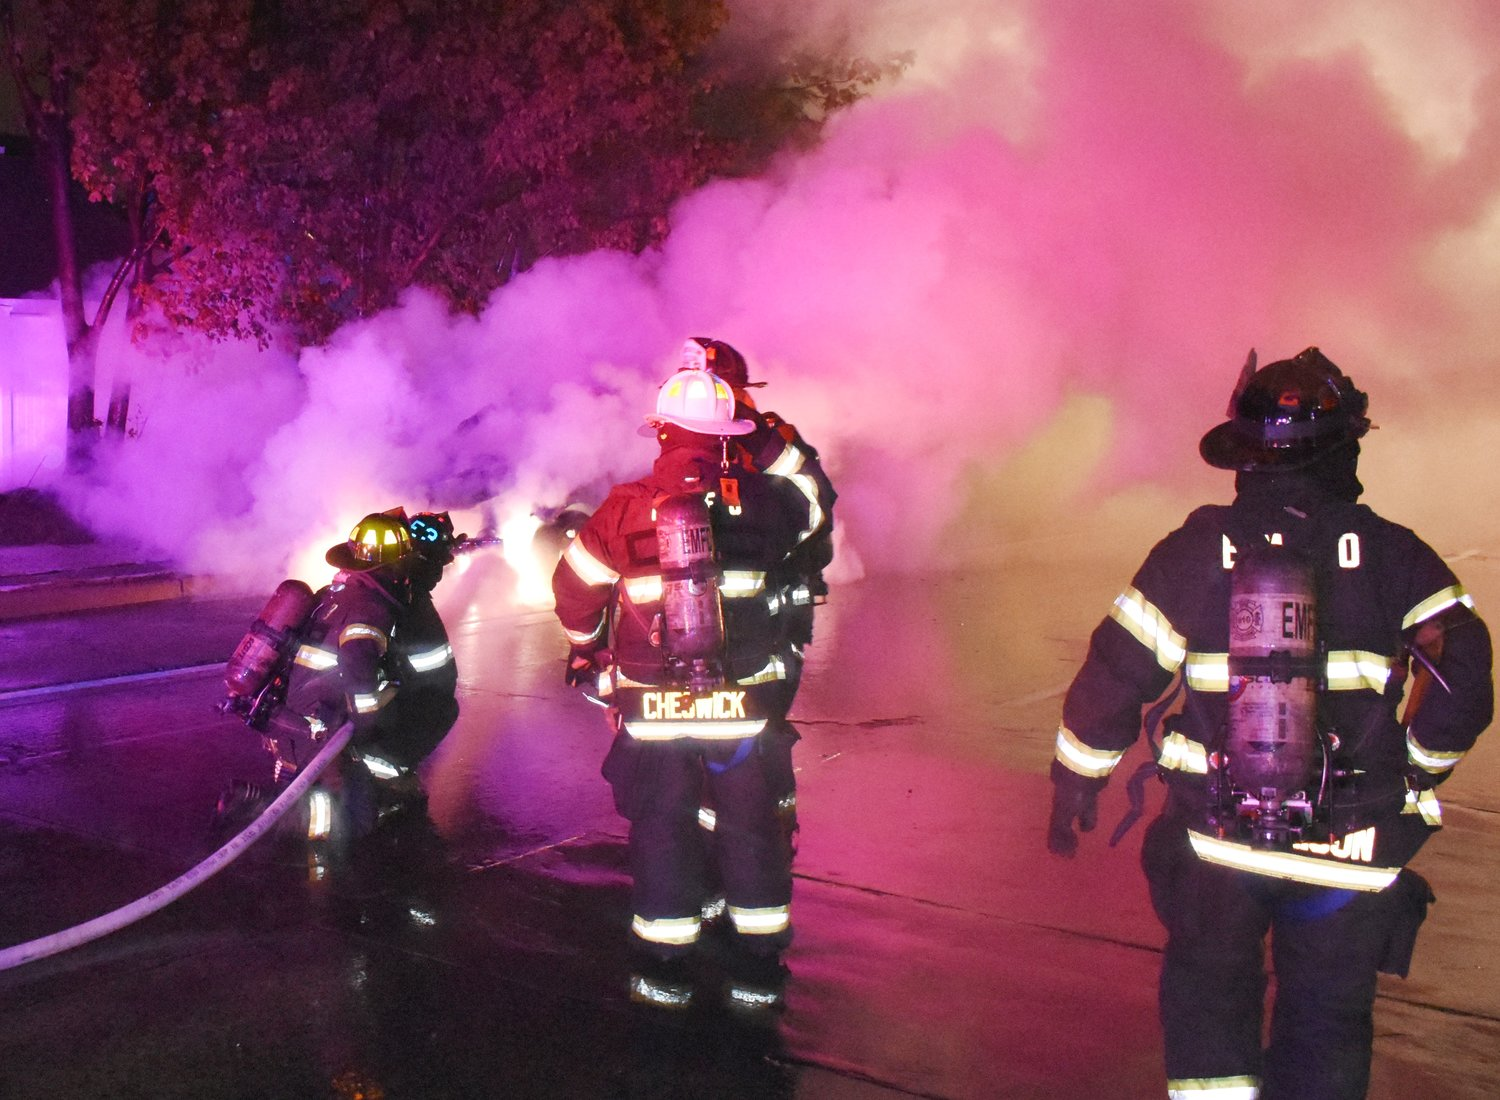 EMFD Stations 3 and 4 extinguished a car fire on Newbridge Road on May 5 at 9:16 p.m.